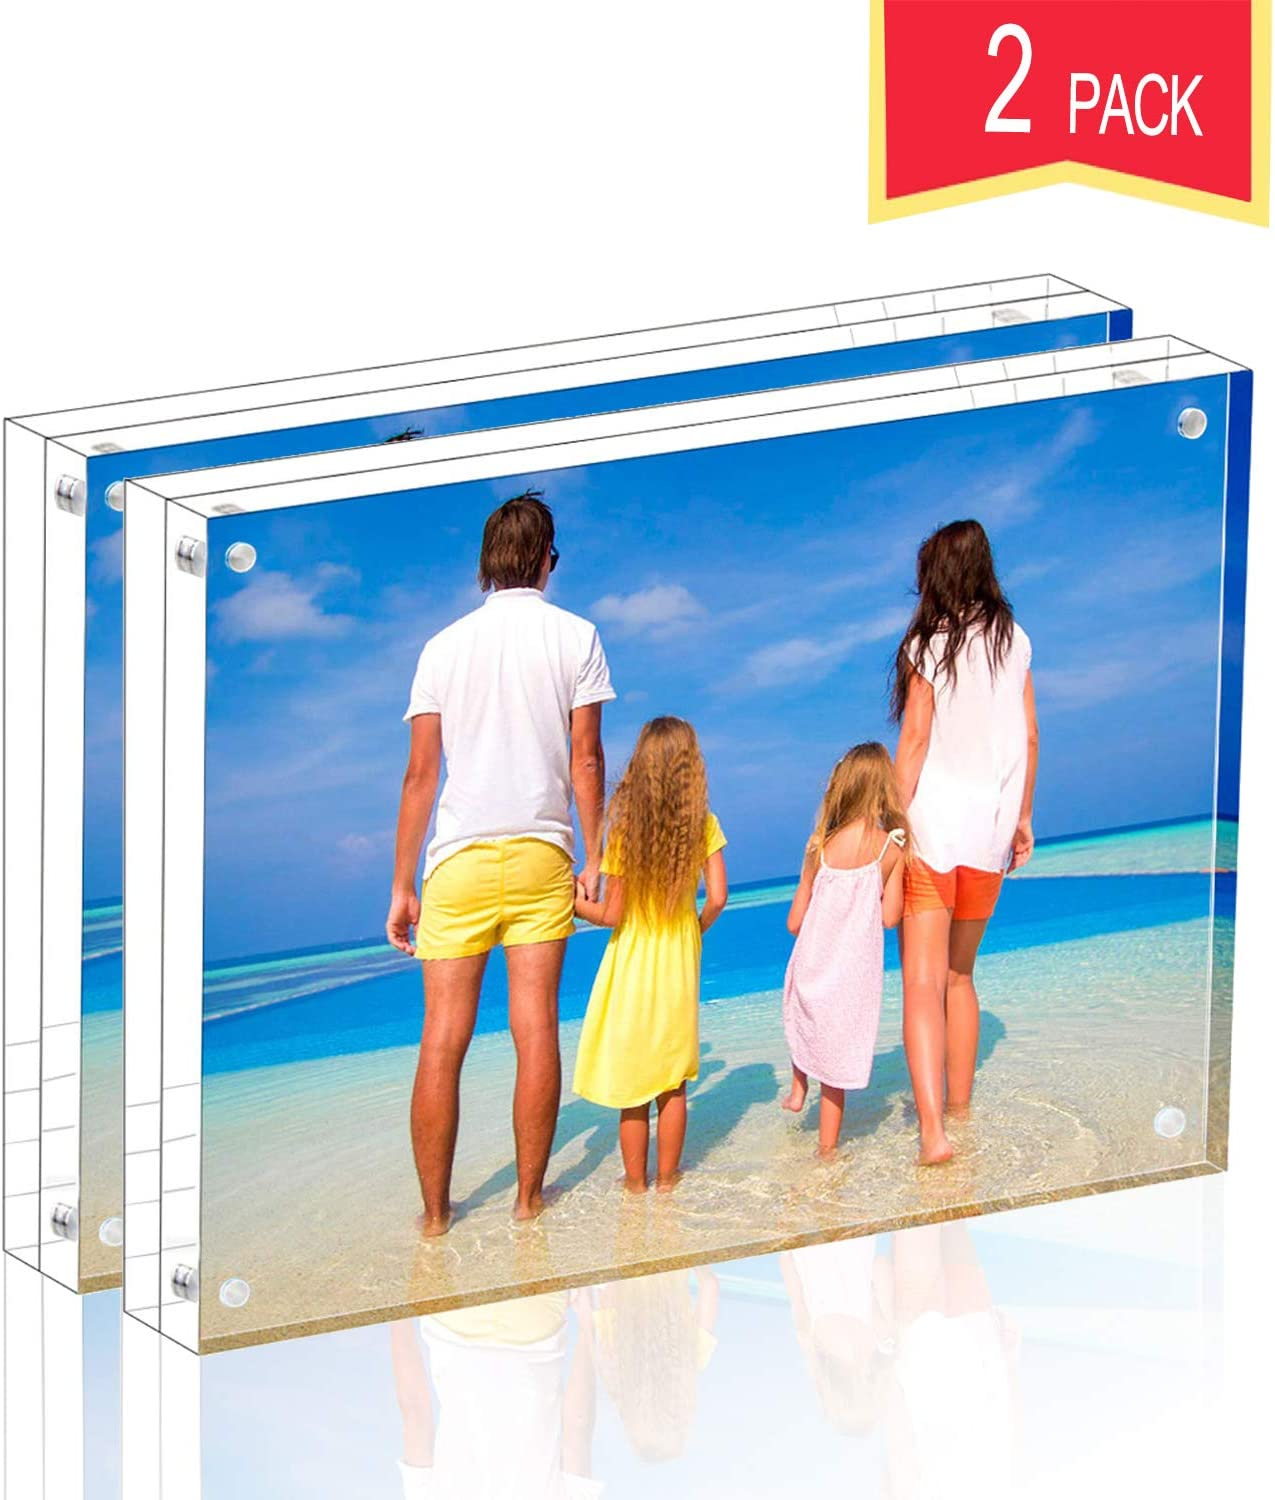 Meetu Acrylic Picture Frame 4x6 Tabletop Photo Frame Magnetic Double Sided Frame Free Standing Desktop for Display Document, Certificate, Photograph, Artwork in Office Room